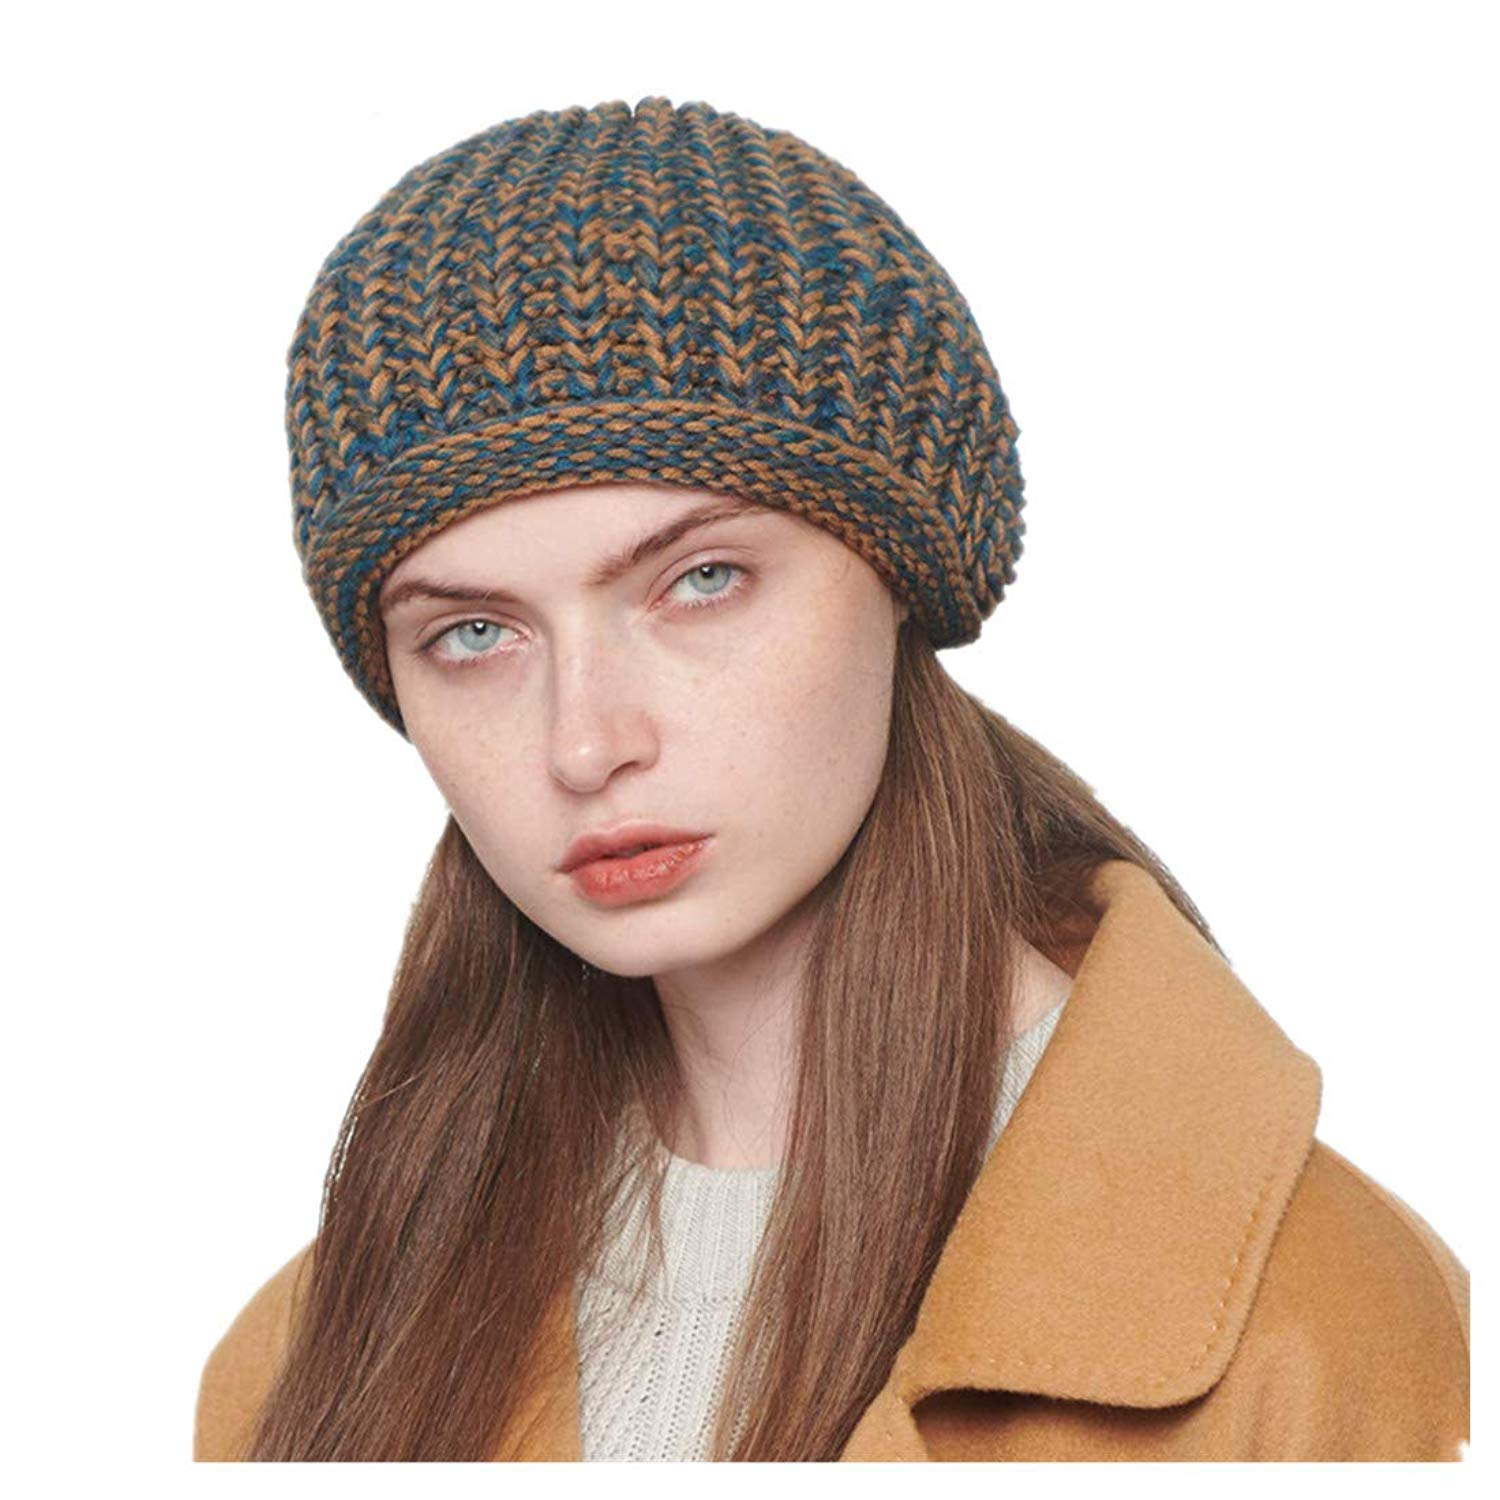 ede624dbc7391 Get Quotations · Globalwells Women Winter Knitted Beret Cap Newsboy Flat hat  Beanie Slouchy Baggy Skull Cap